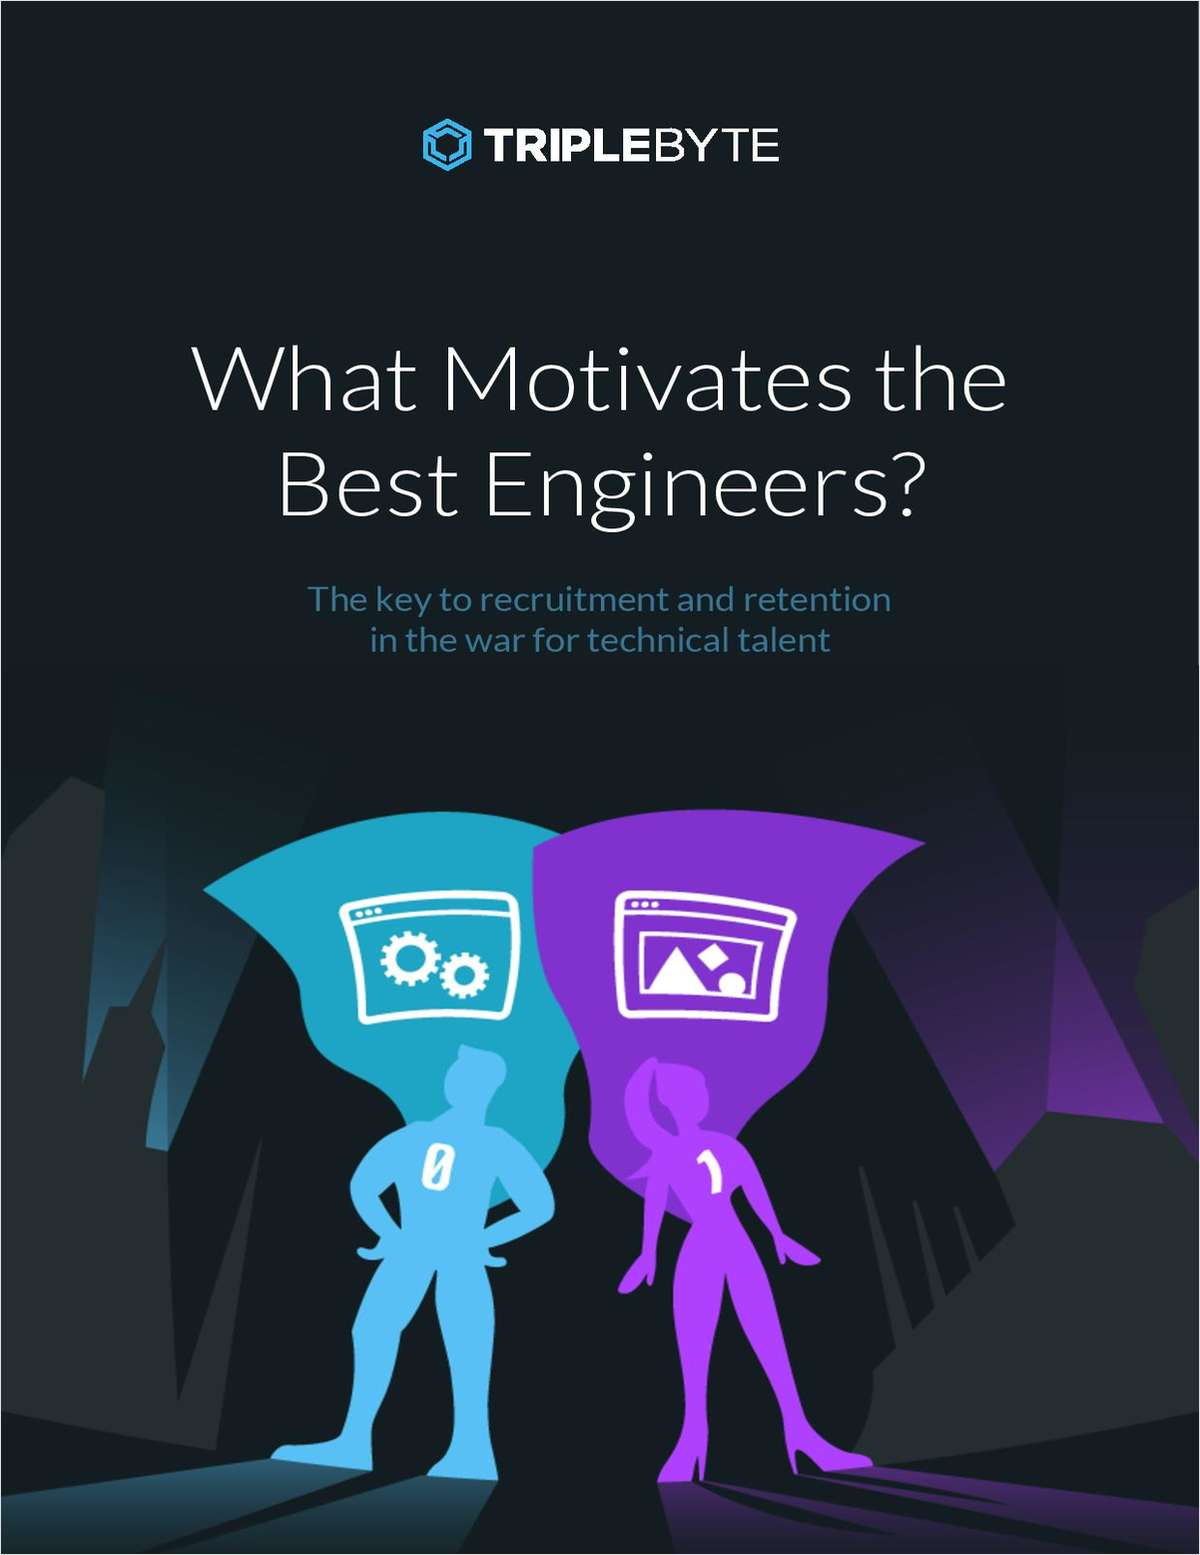 What Motivates the Best Engineers?